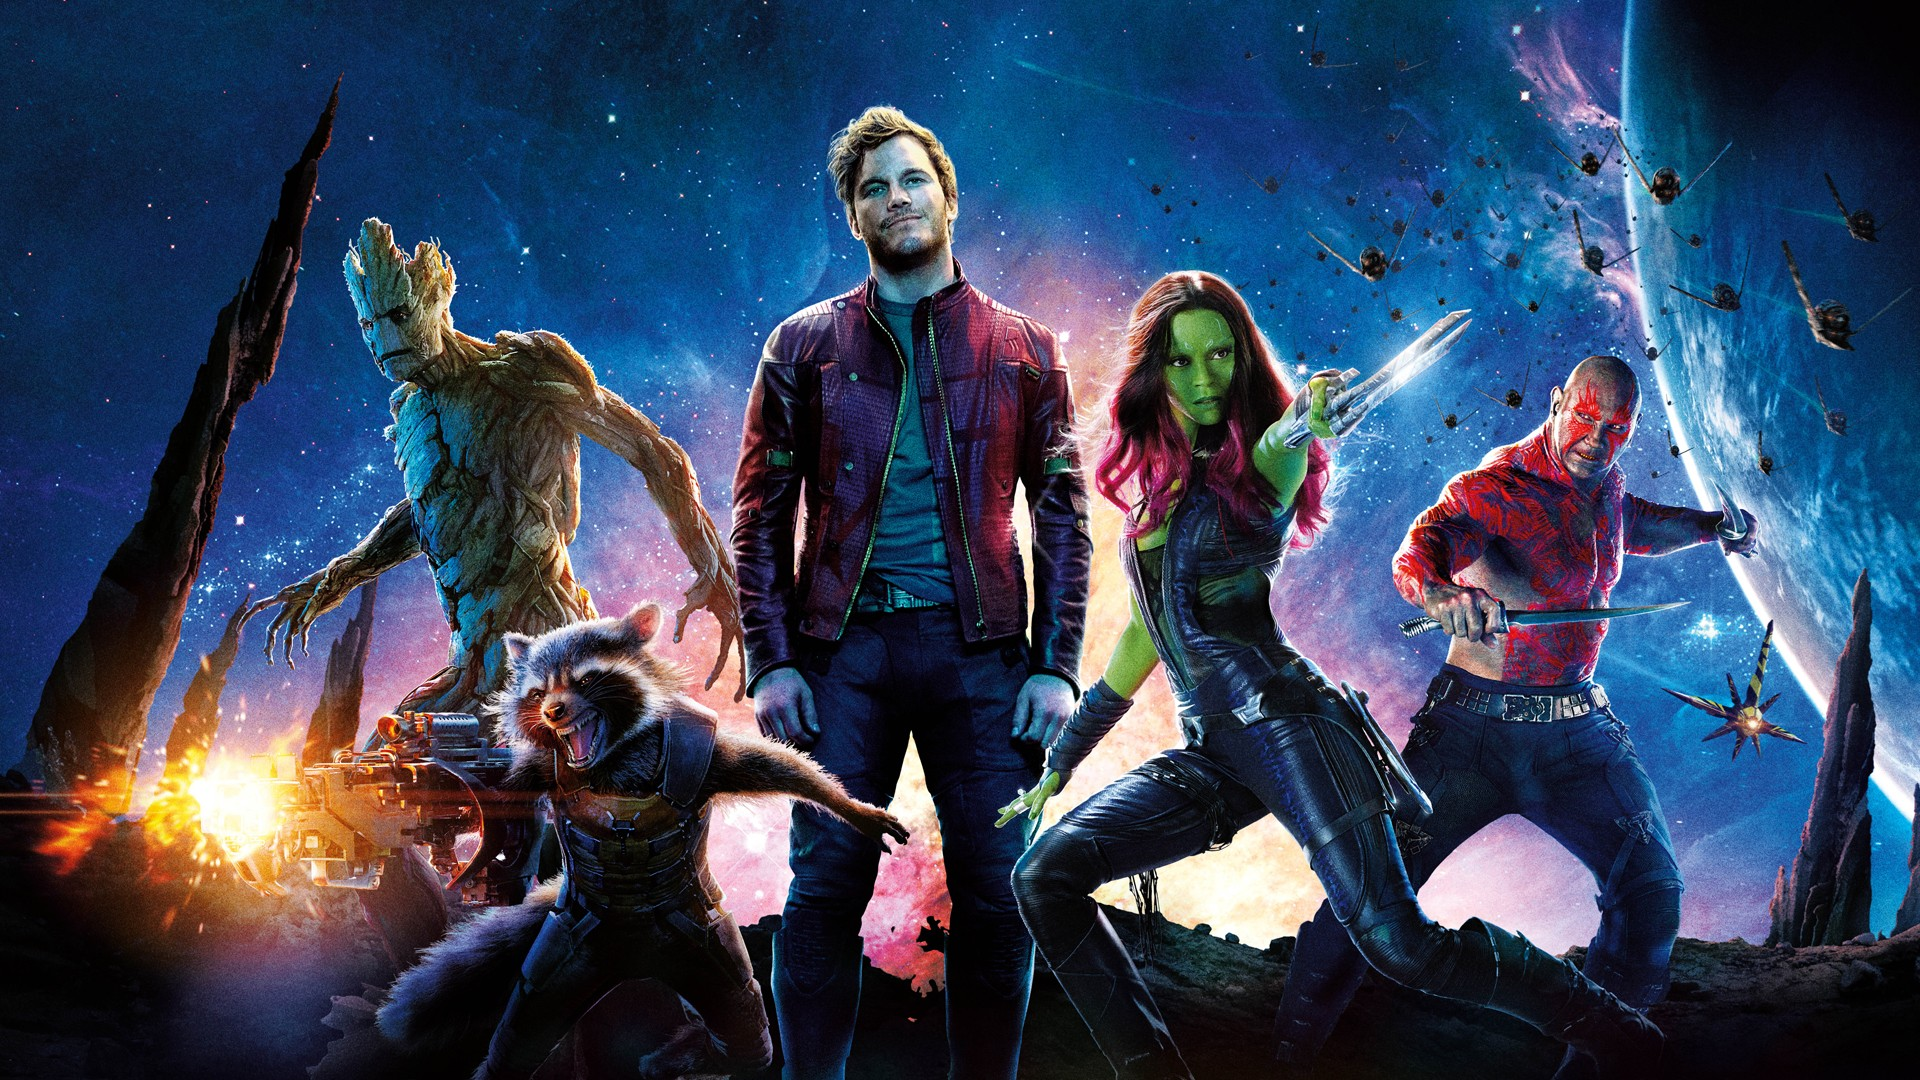 1920x1080 Guardians Of The Galaxy Wallpaper By Sachso74 On DeviantArt